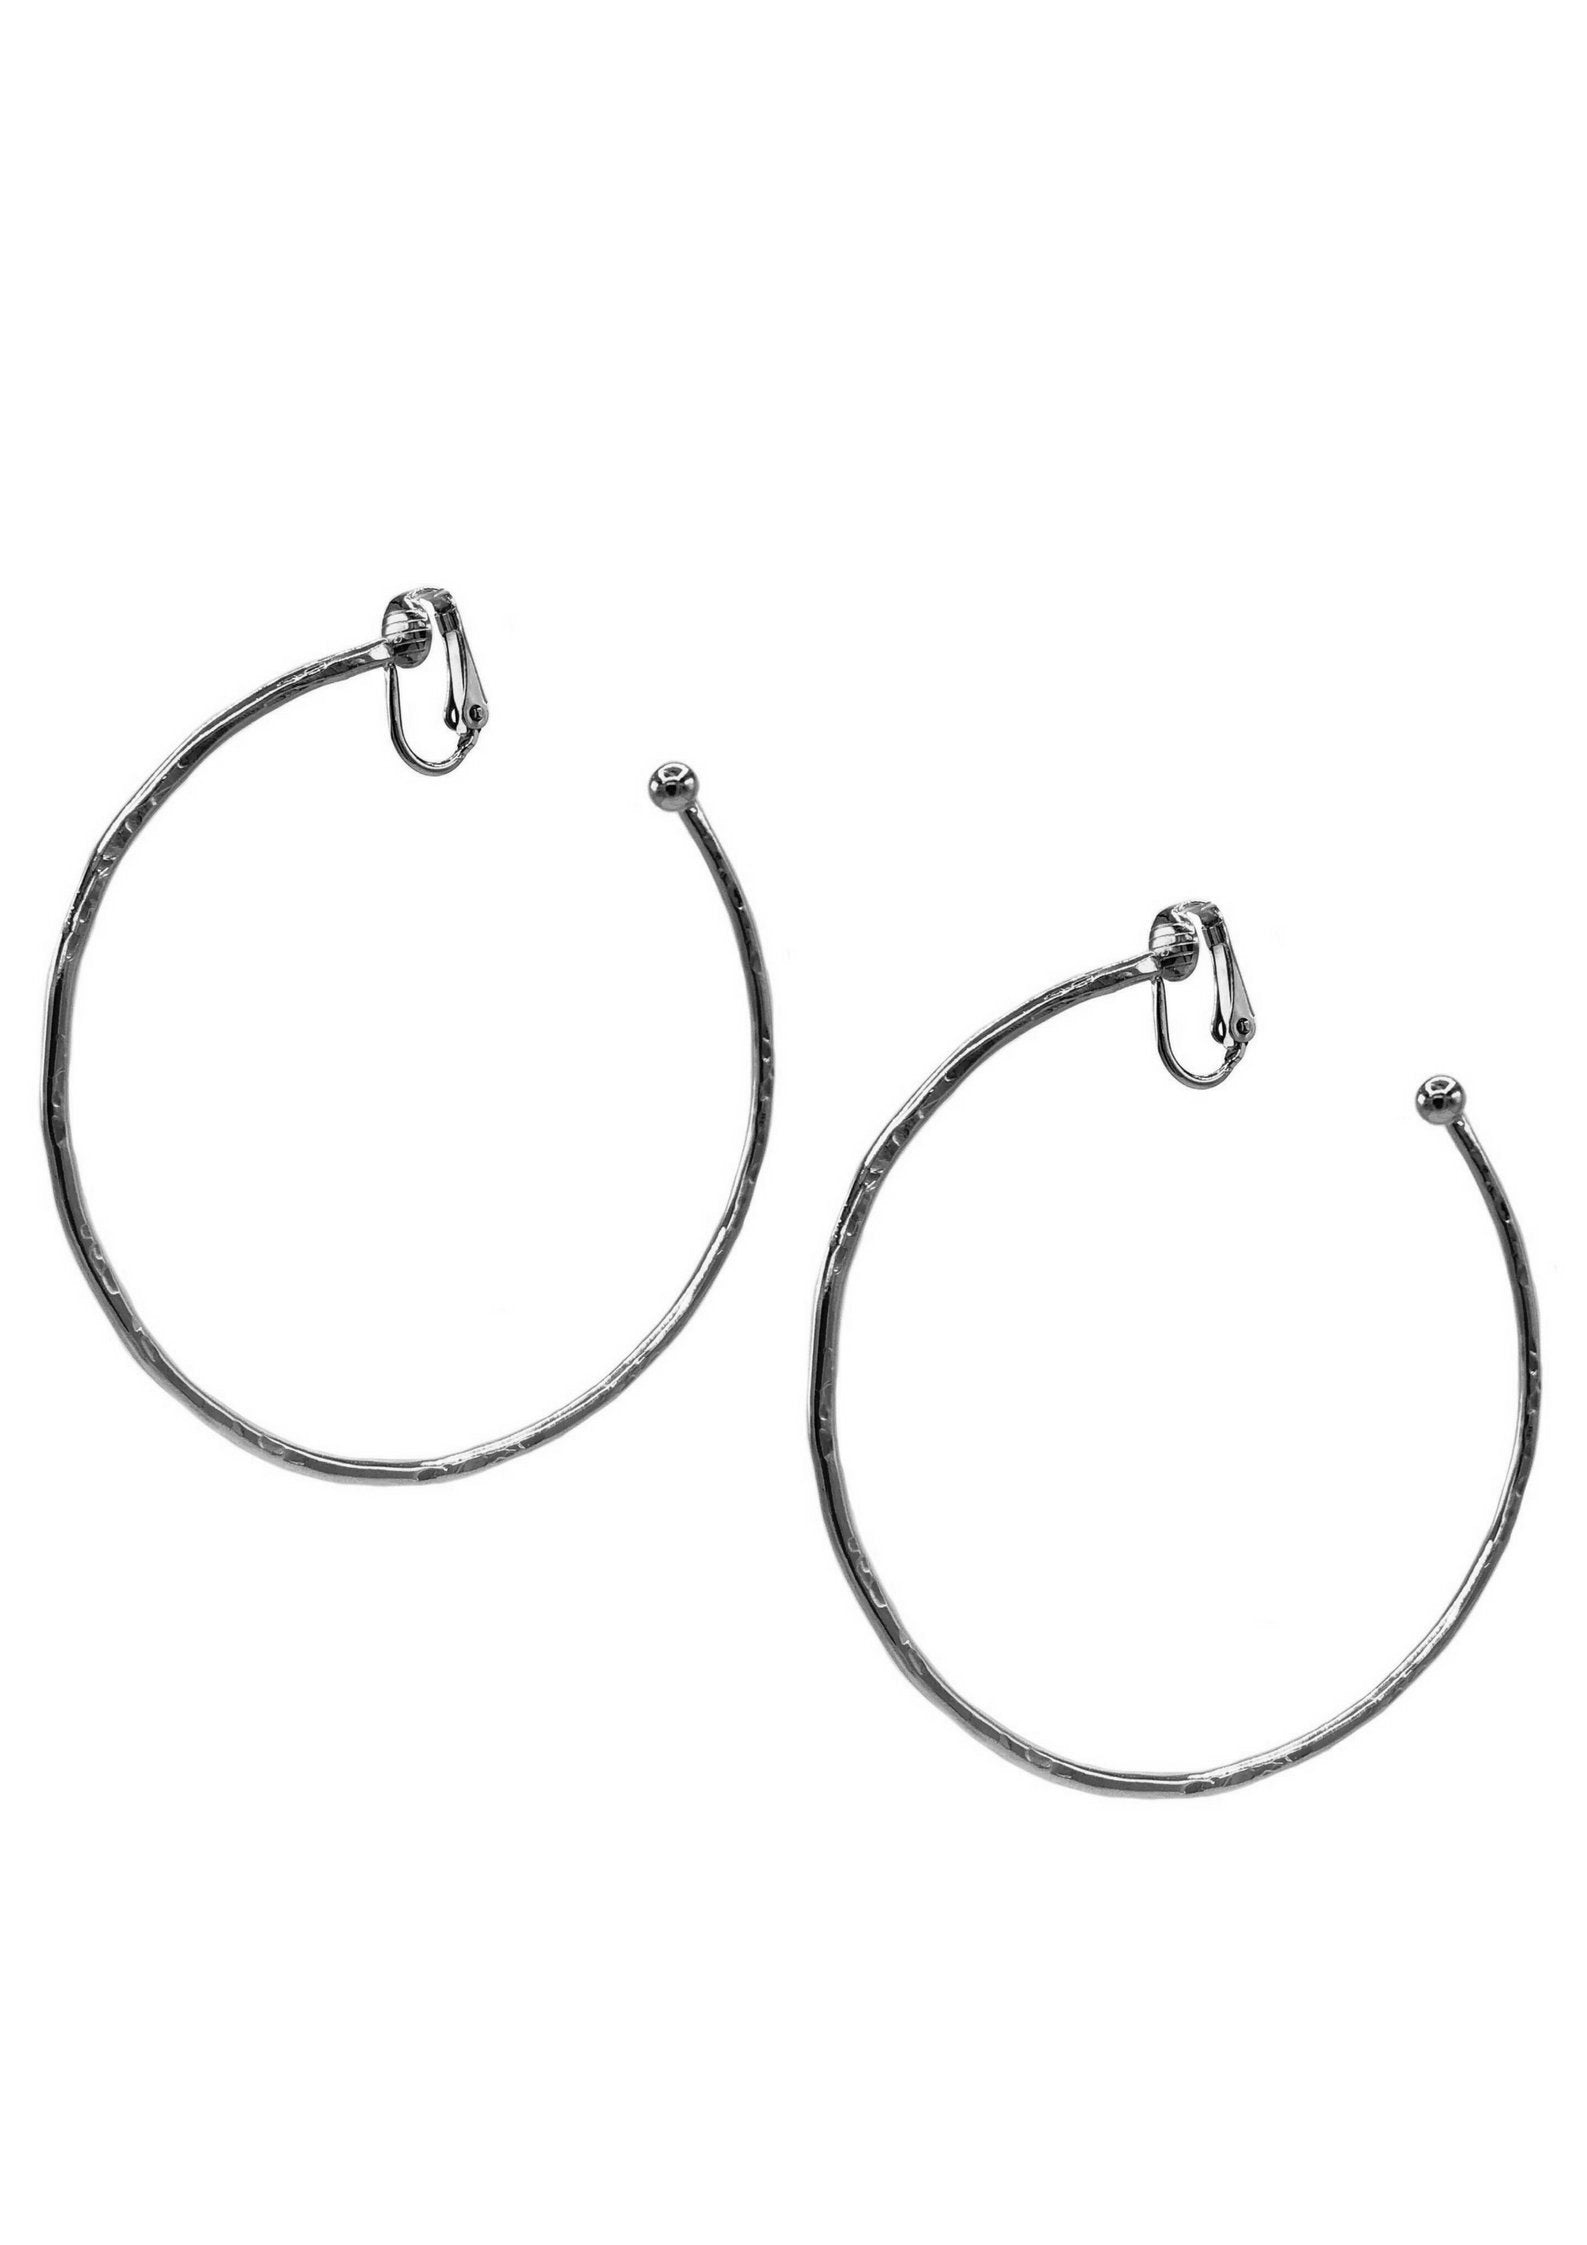 Silver Medium Hooptastic Clip Earrings-Earrings-JAREDJAMIN Jewelry Online-JARED JAMIN